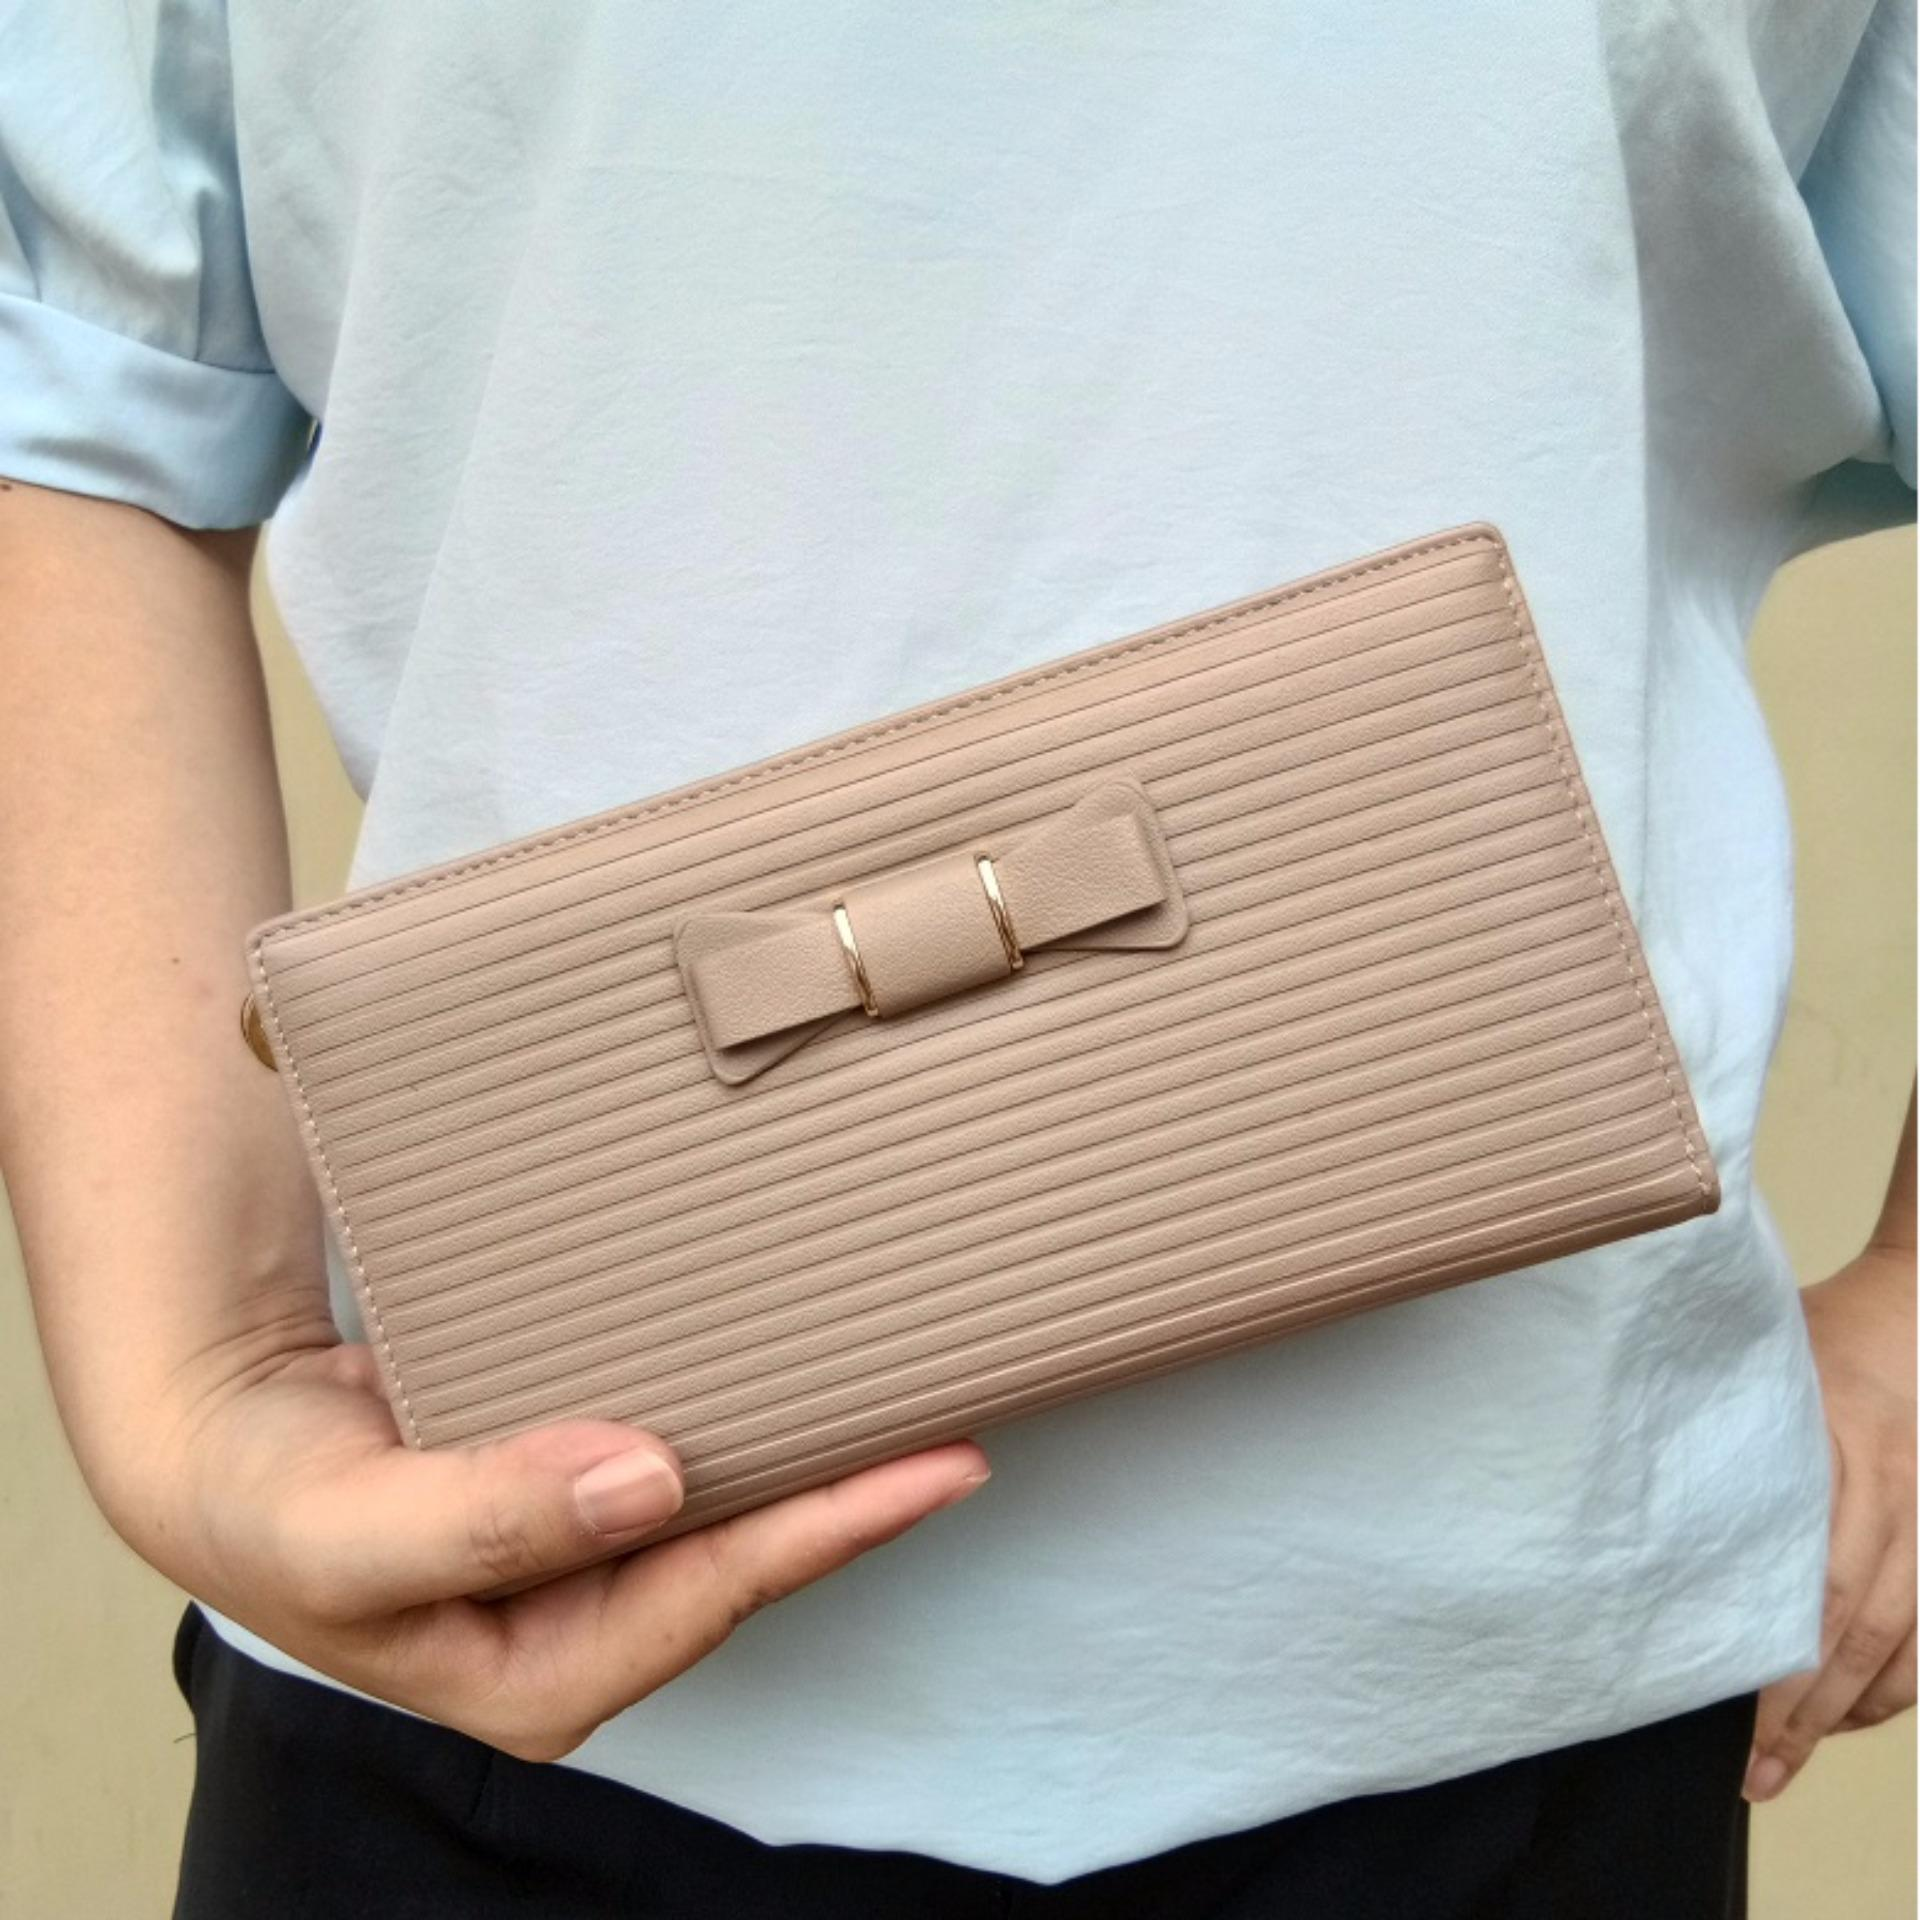 Harga Jcf Multifungsi Dompet Clutch Wanita Fashion Branded Pu Leather Import Alice Light Brown Bagus Dan Mewah Original